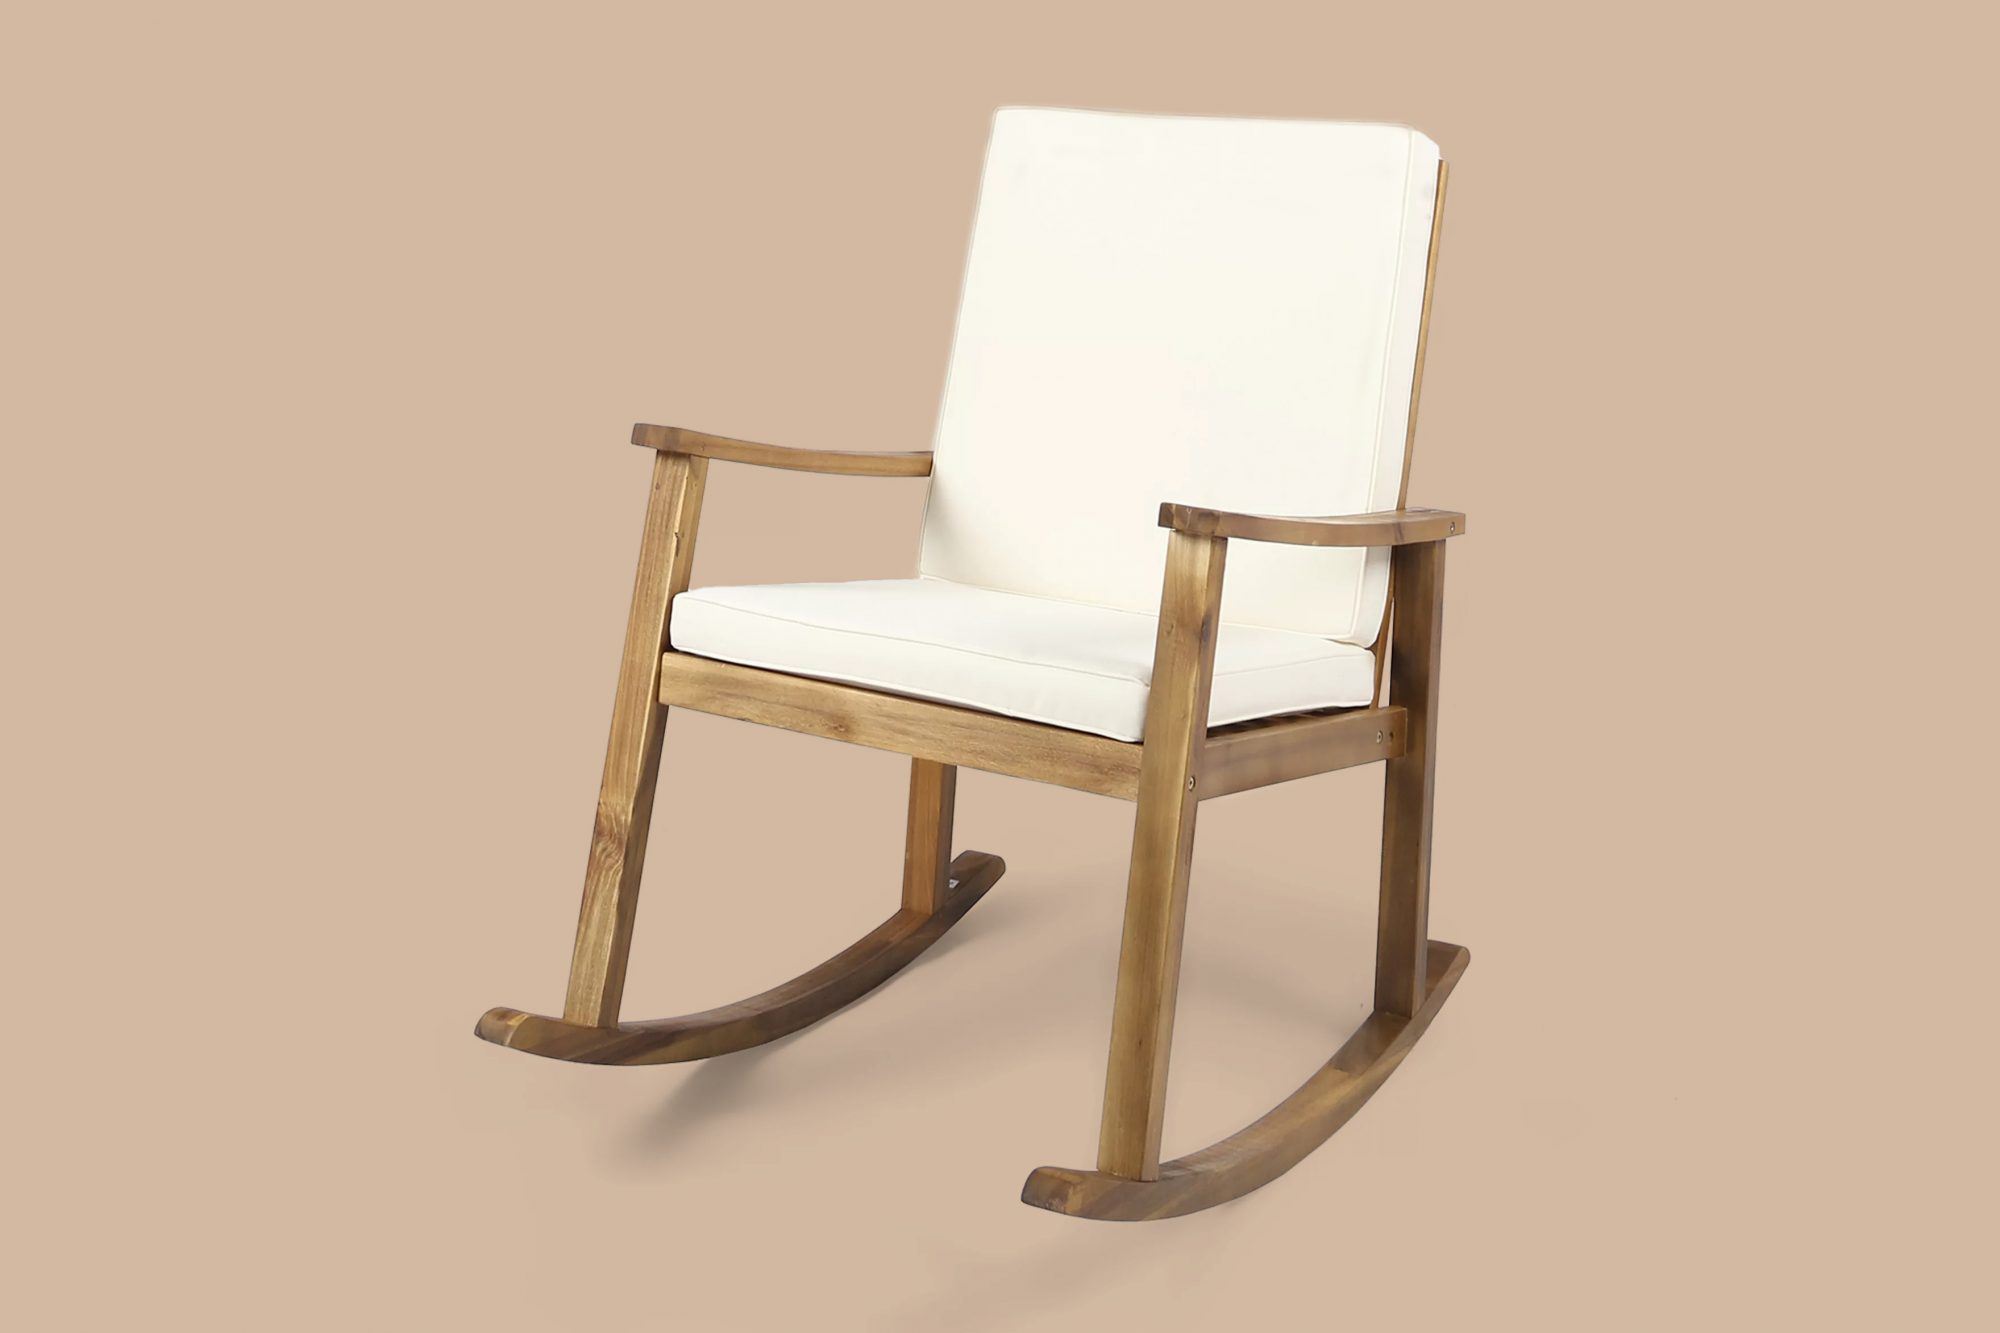 gracie oaks wood outdoor rocking chair